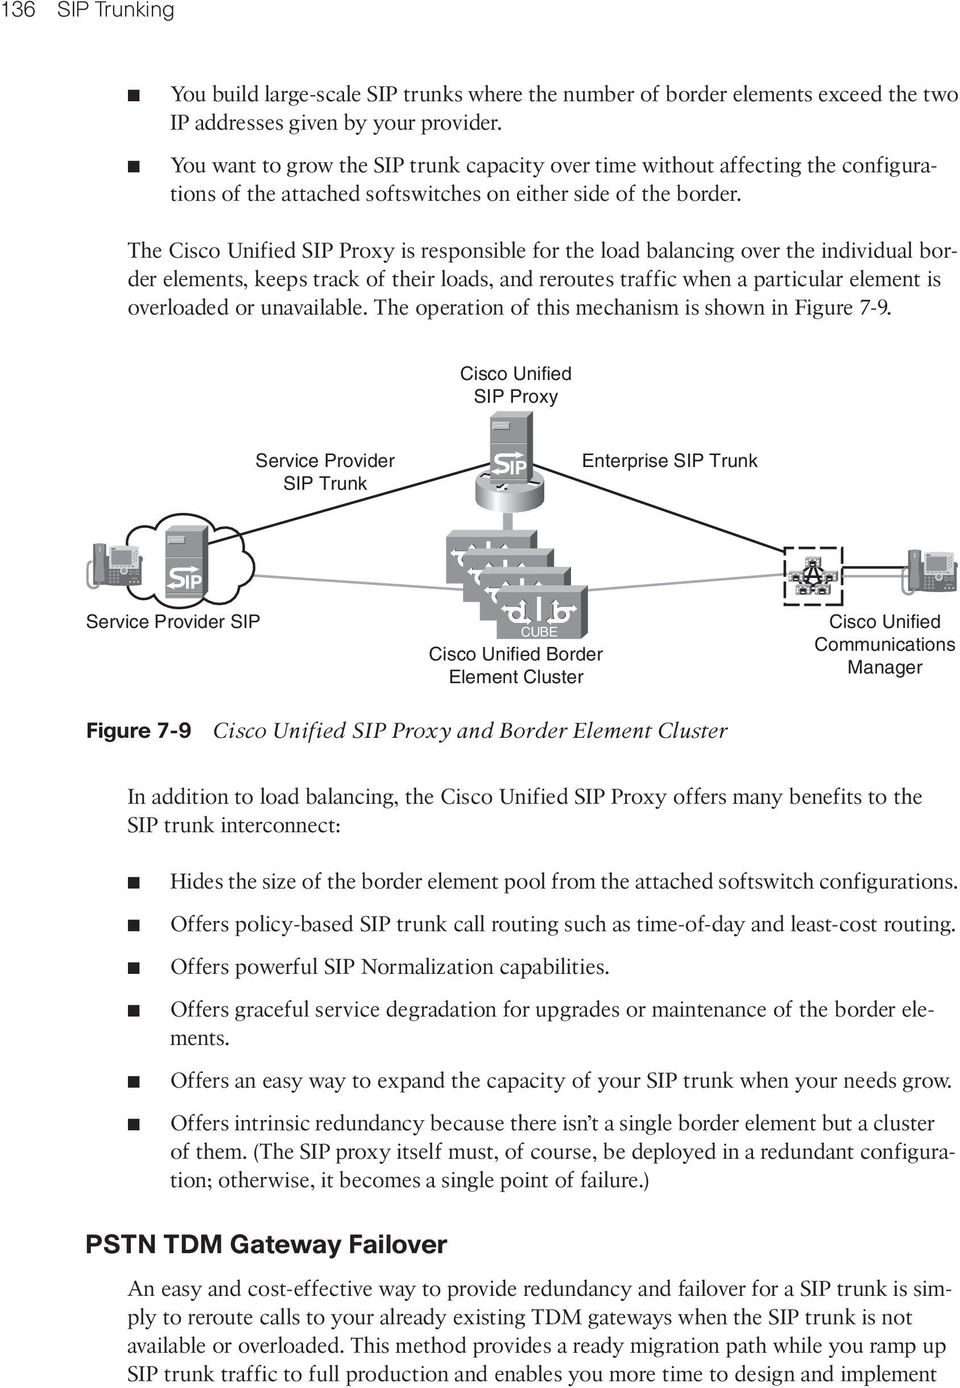 The Cisco Unified SIP Proxy is responsible for the load balancing over the individual border elements, keeps track of their loads, and reroutes traffic when a particular element is overloaded or